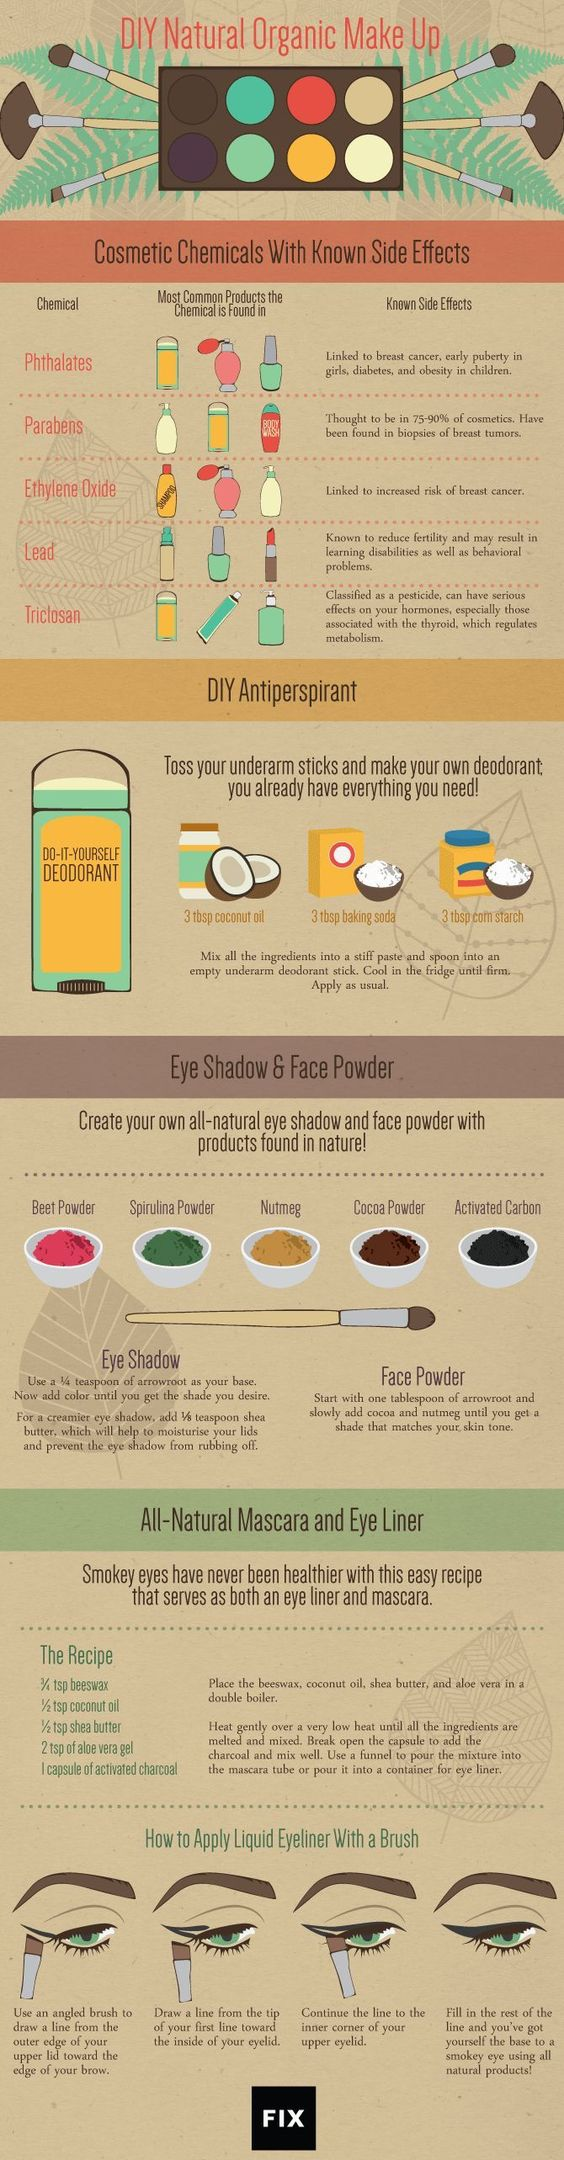 Make Your Own Deodorant & Other Natural Beauty Products (Infographic):